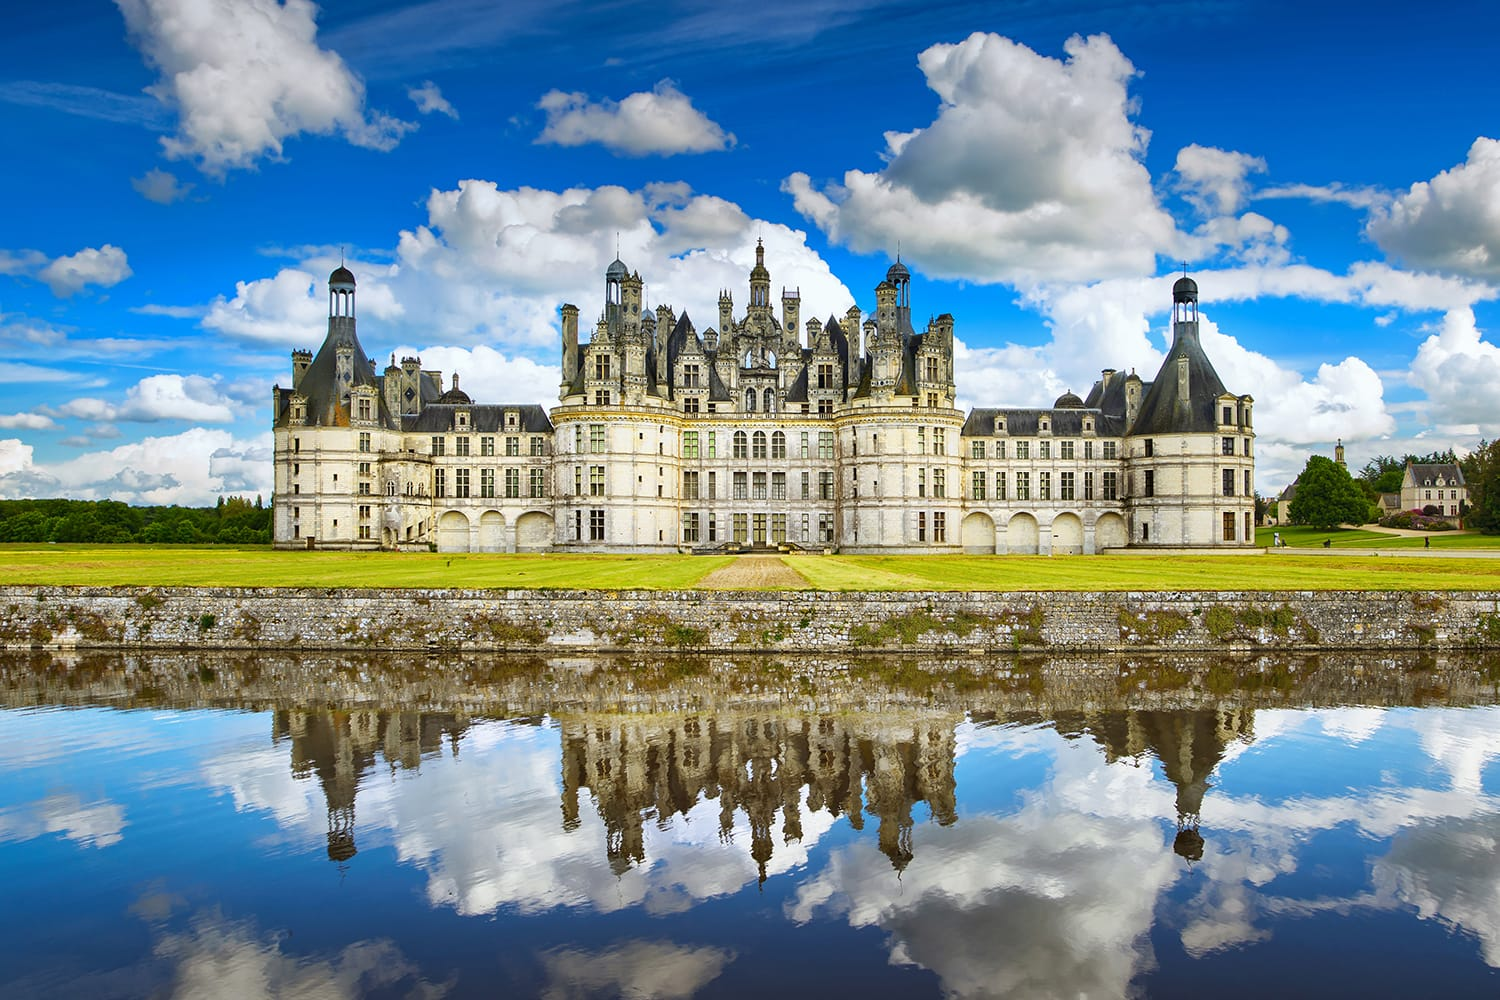 Chateau de Chambord, royal medieval french castle and reflection. Loire Valley, France